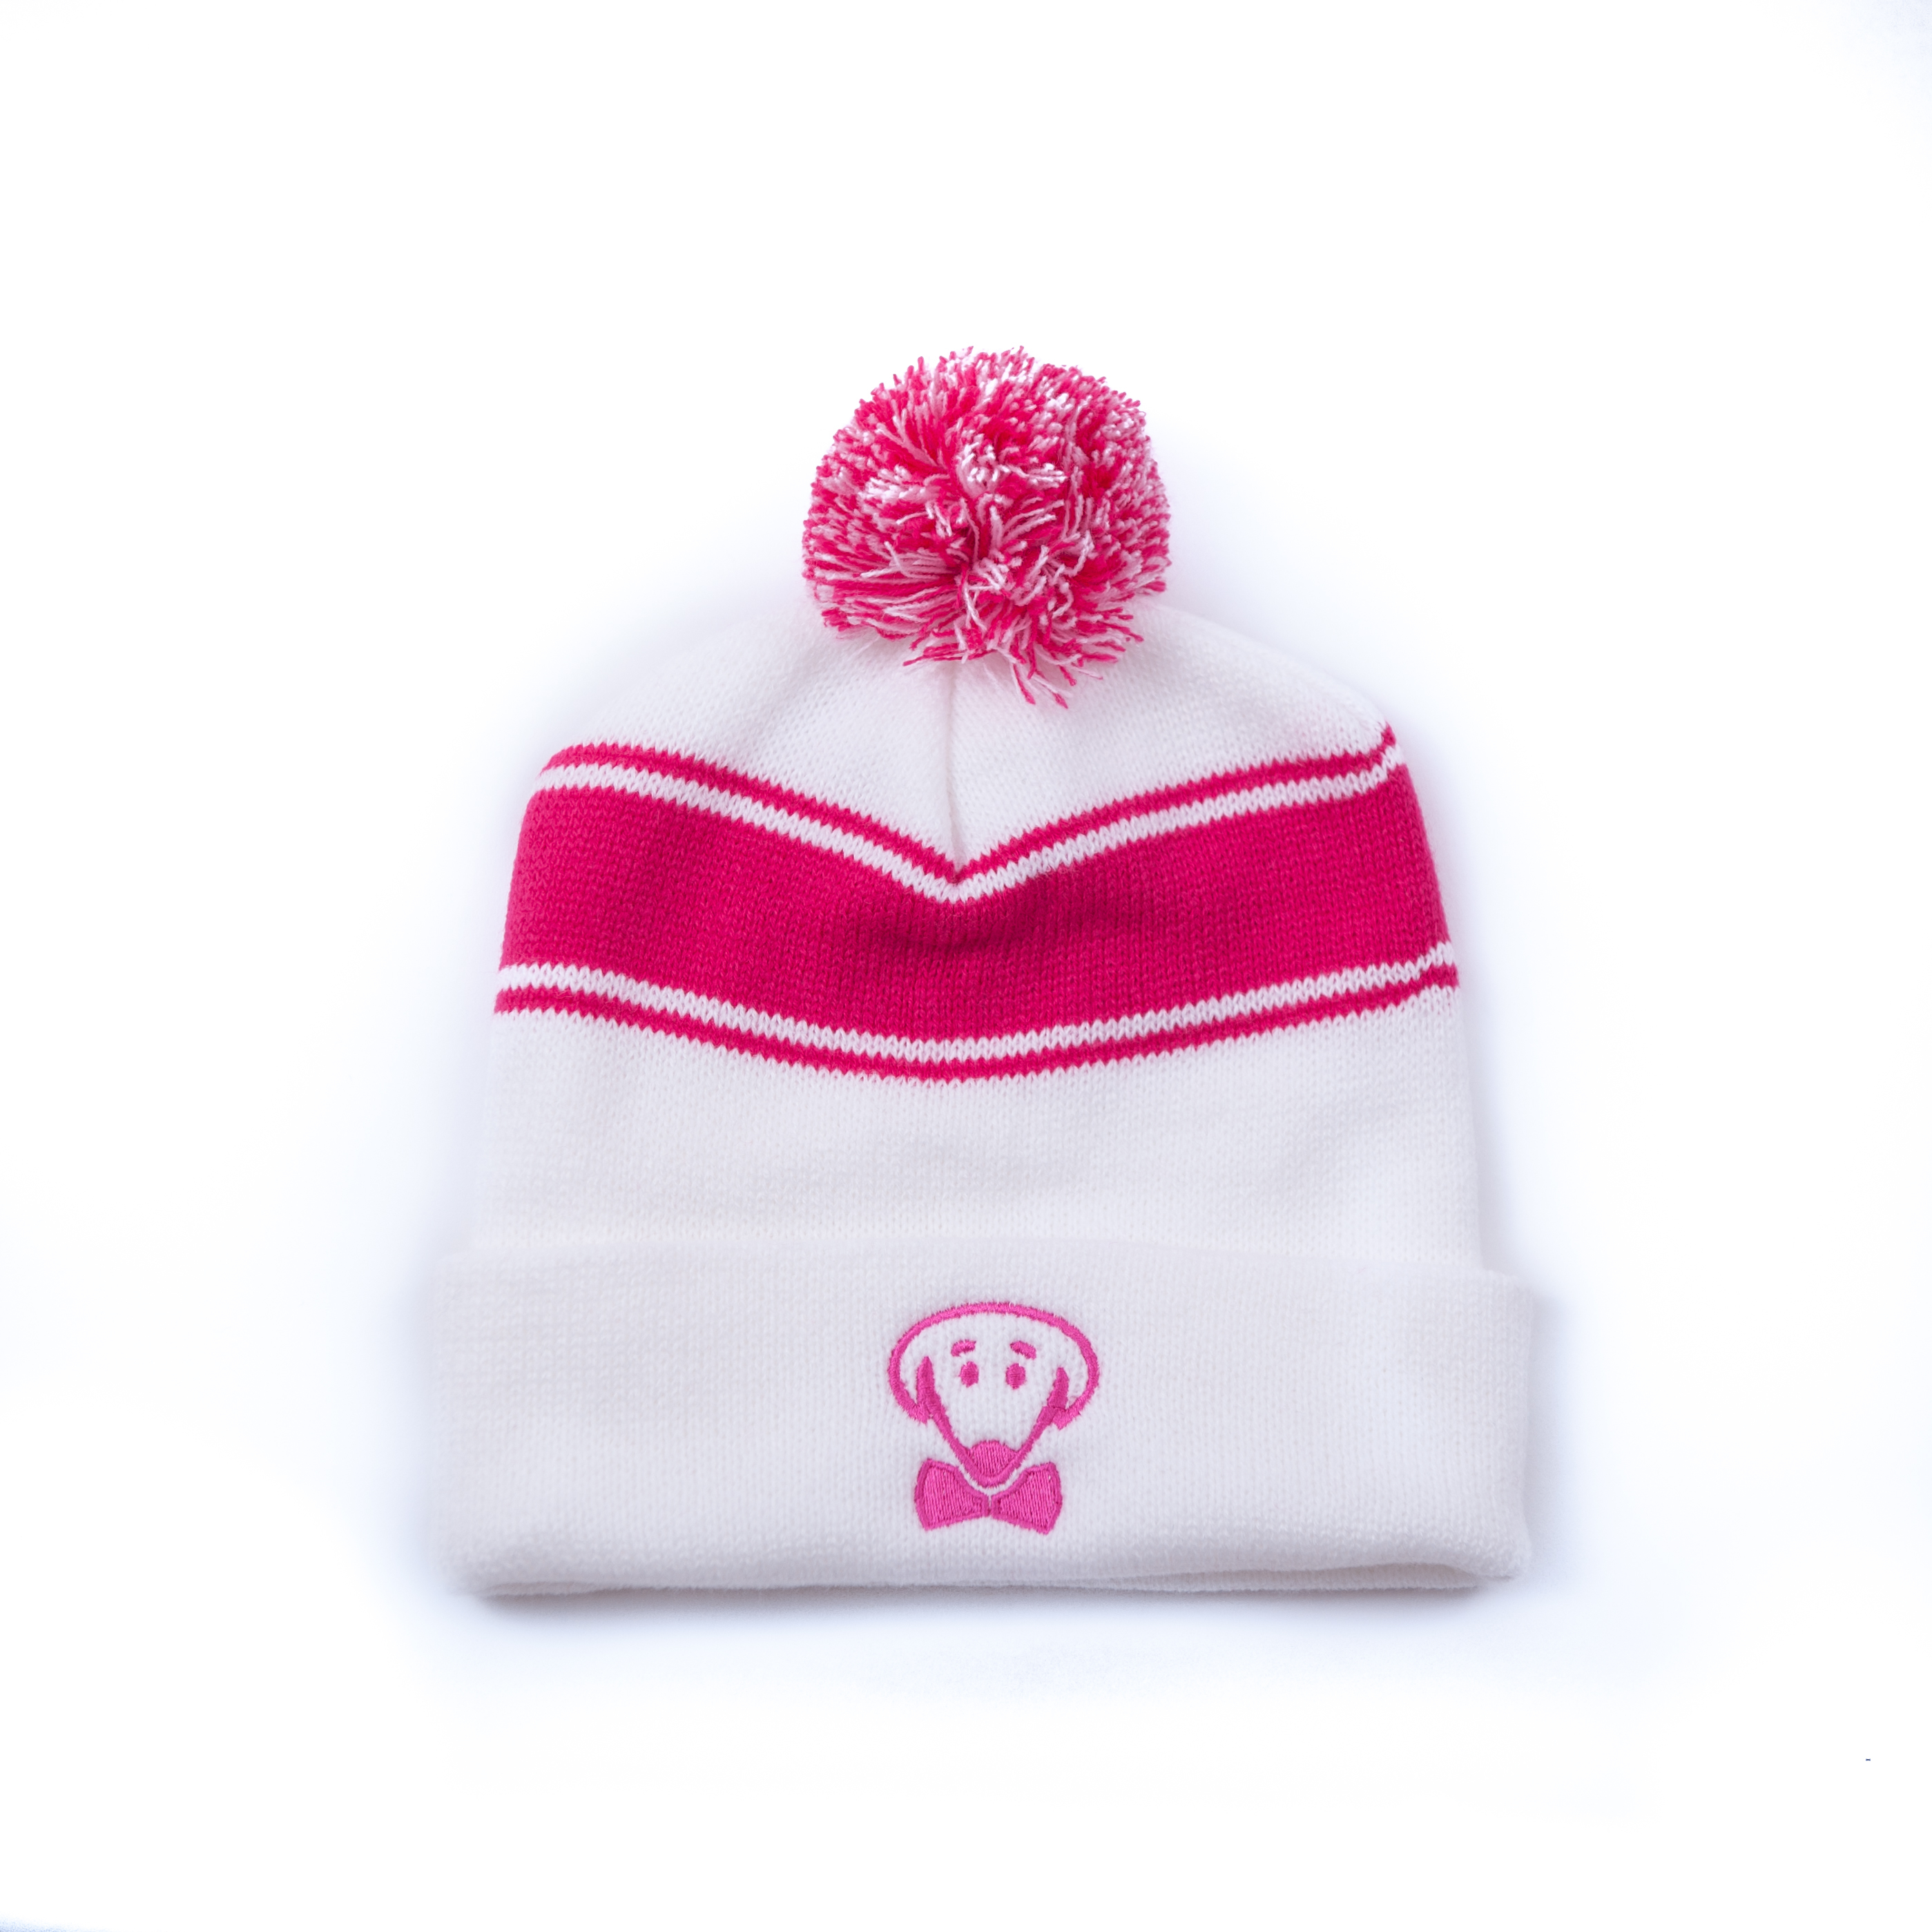 Beau Tyler – Olsen pink and white winter knit hat – Stay Warm, Look Cute